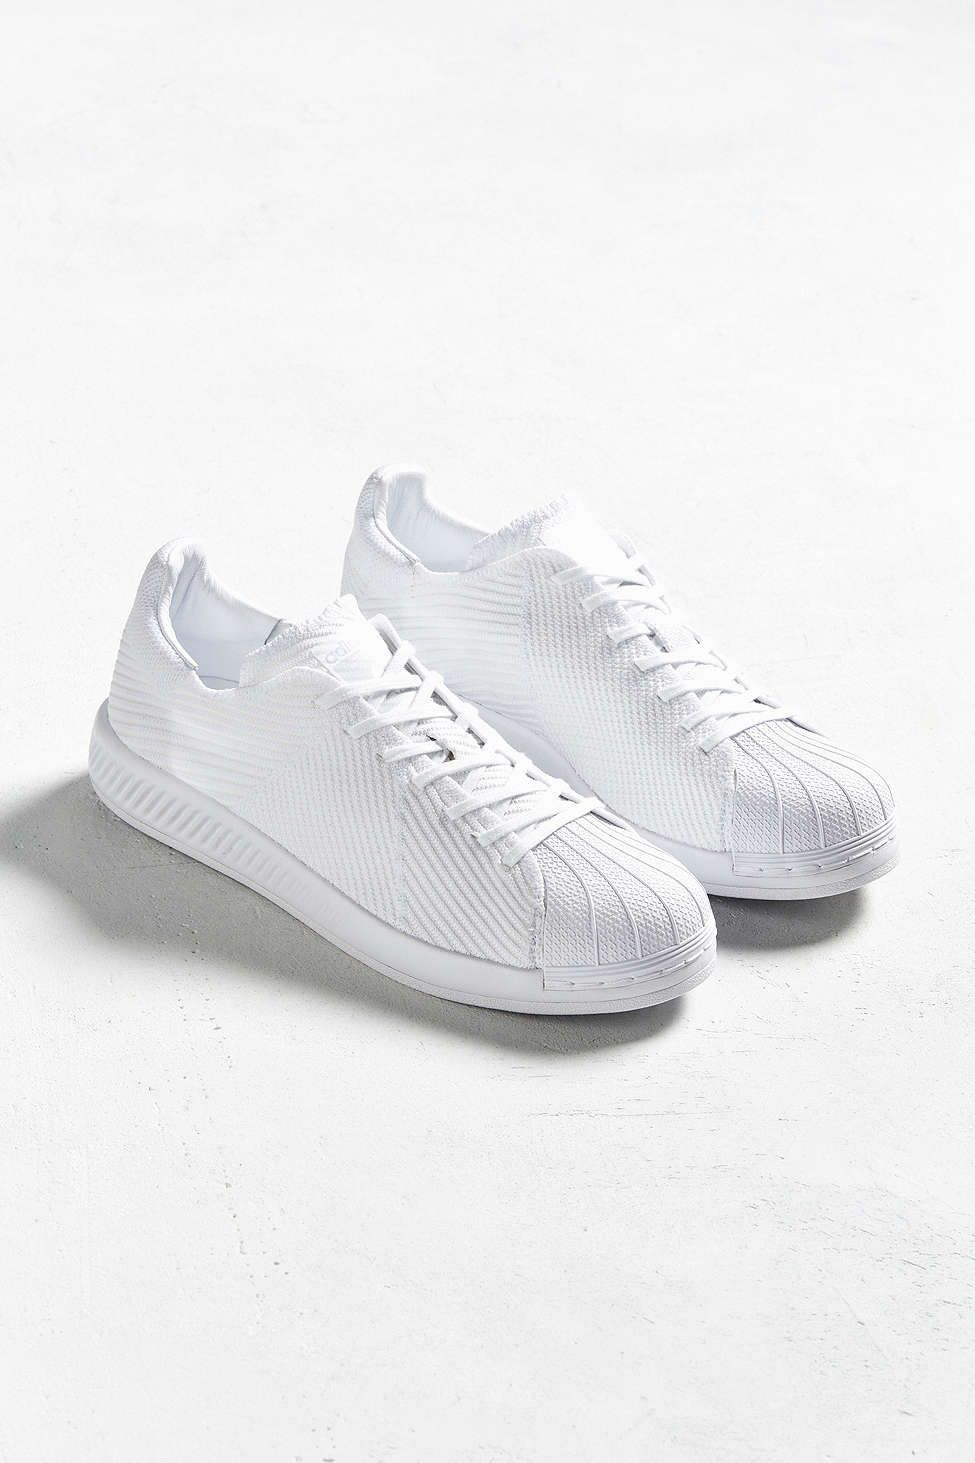 watch cb684 cd9fc Shop adidas Superstar Bounce Primeknit Sneaker at Urban Outfitters today.  We carry all the latest styles, colors and brands for you to choose from  right ...